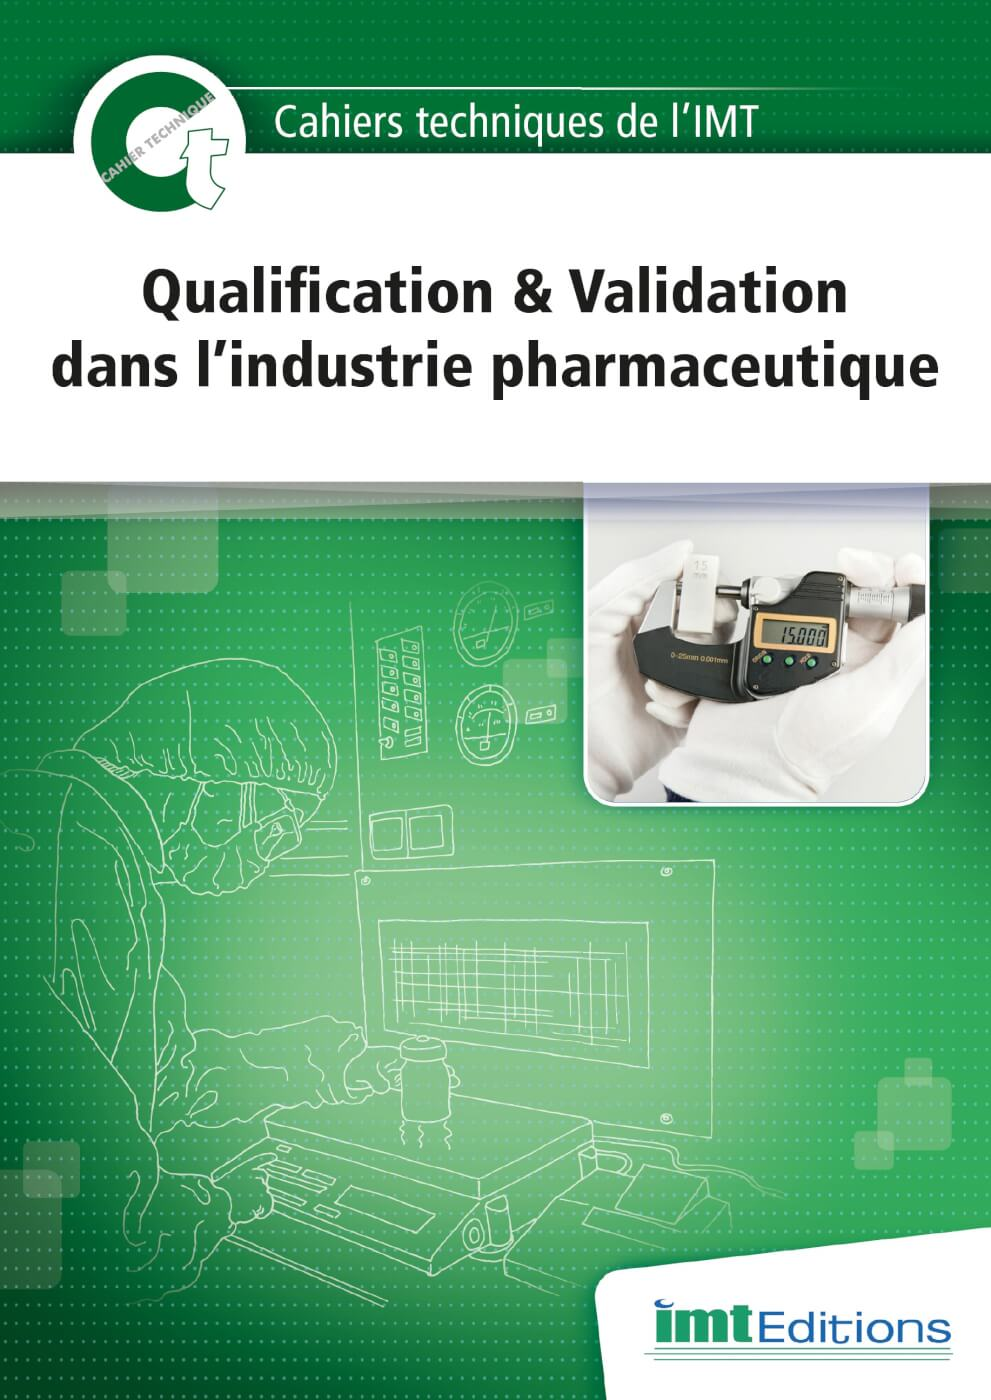 Ouvrage professionnel sur la qualification & validation dans l'industrie pharmaceutique